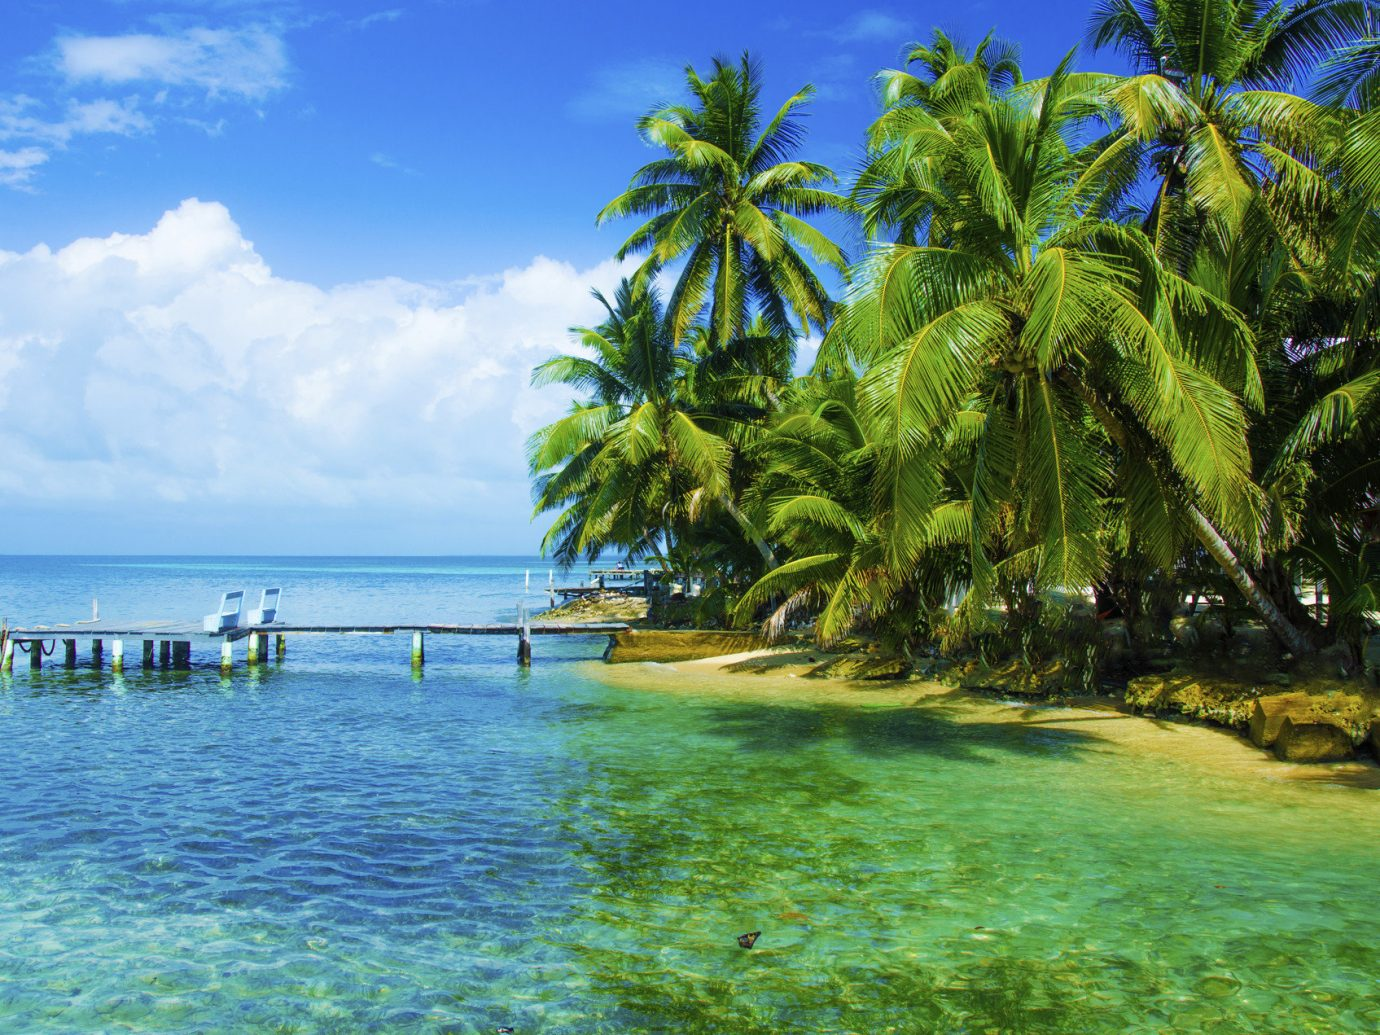 Trip Ideas tree water outdoor geographical feature landform caribbean body of water tropics Beach Sea Nature vacation Ocean arecales Lagoon Island bay Coast plant palm family Jungle Resort islet shore